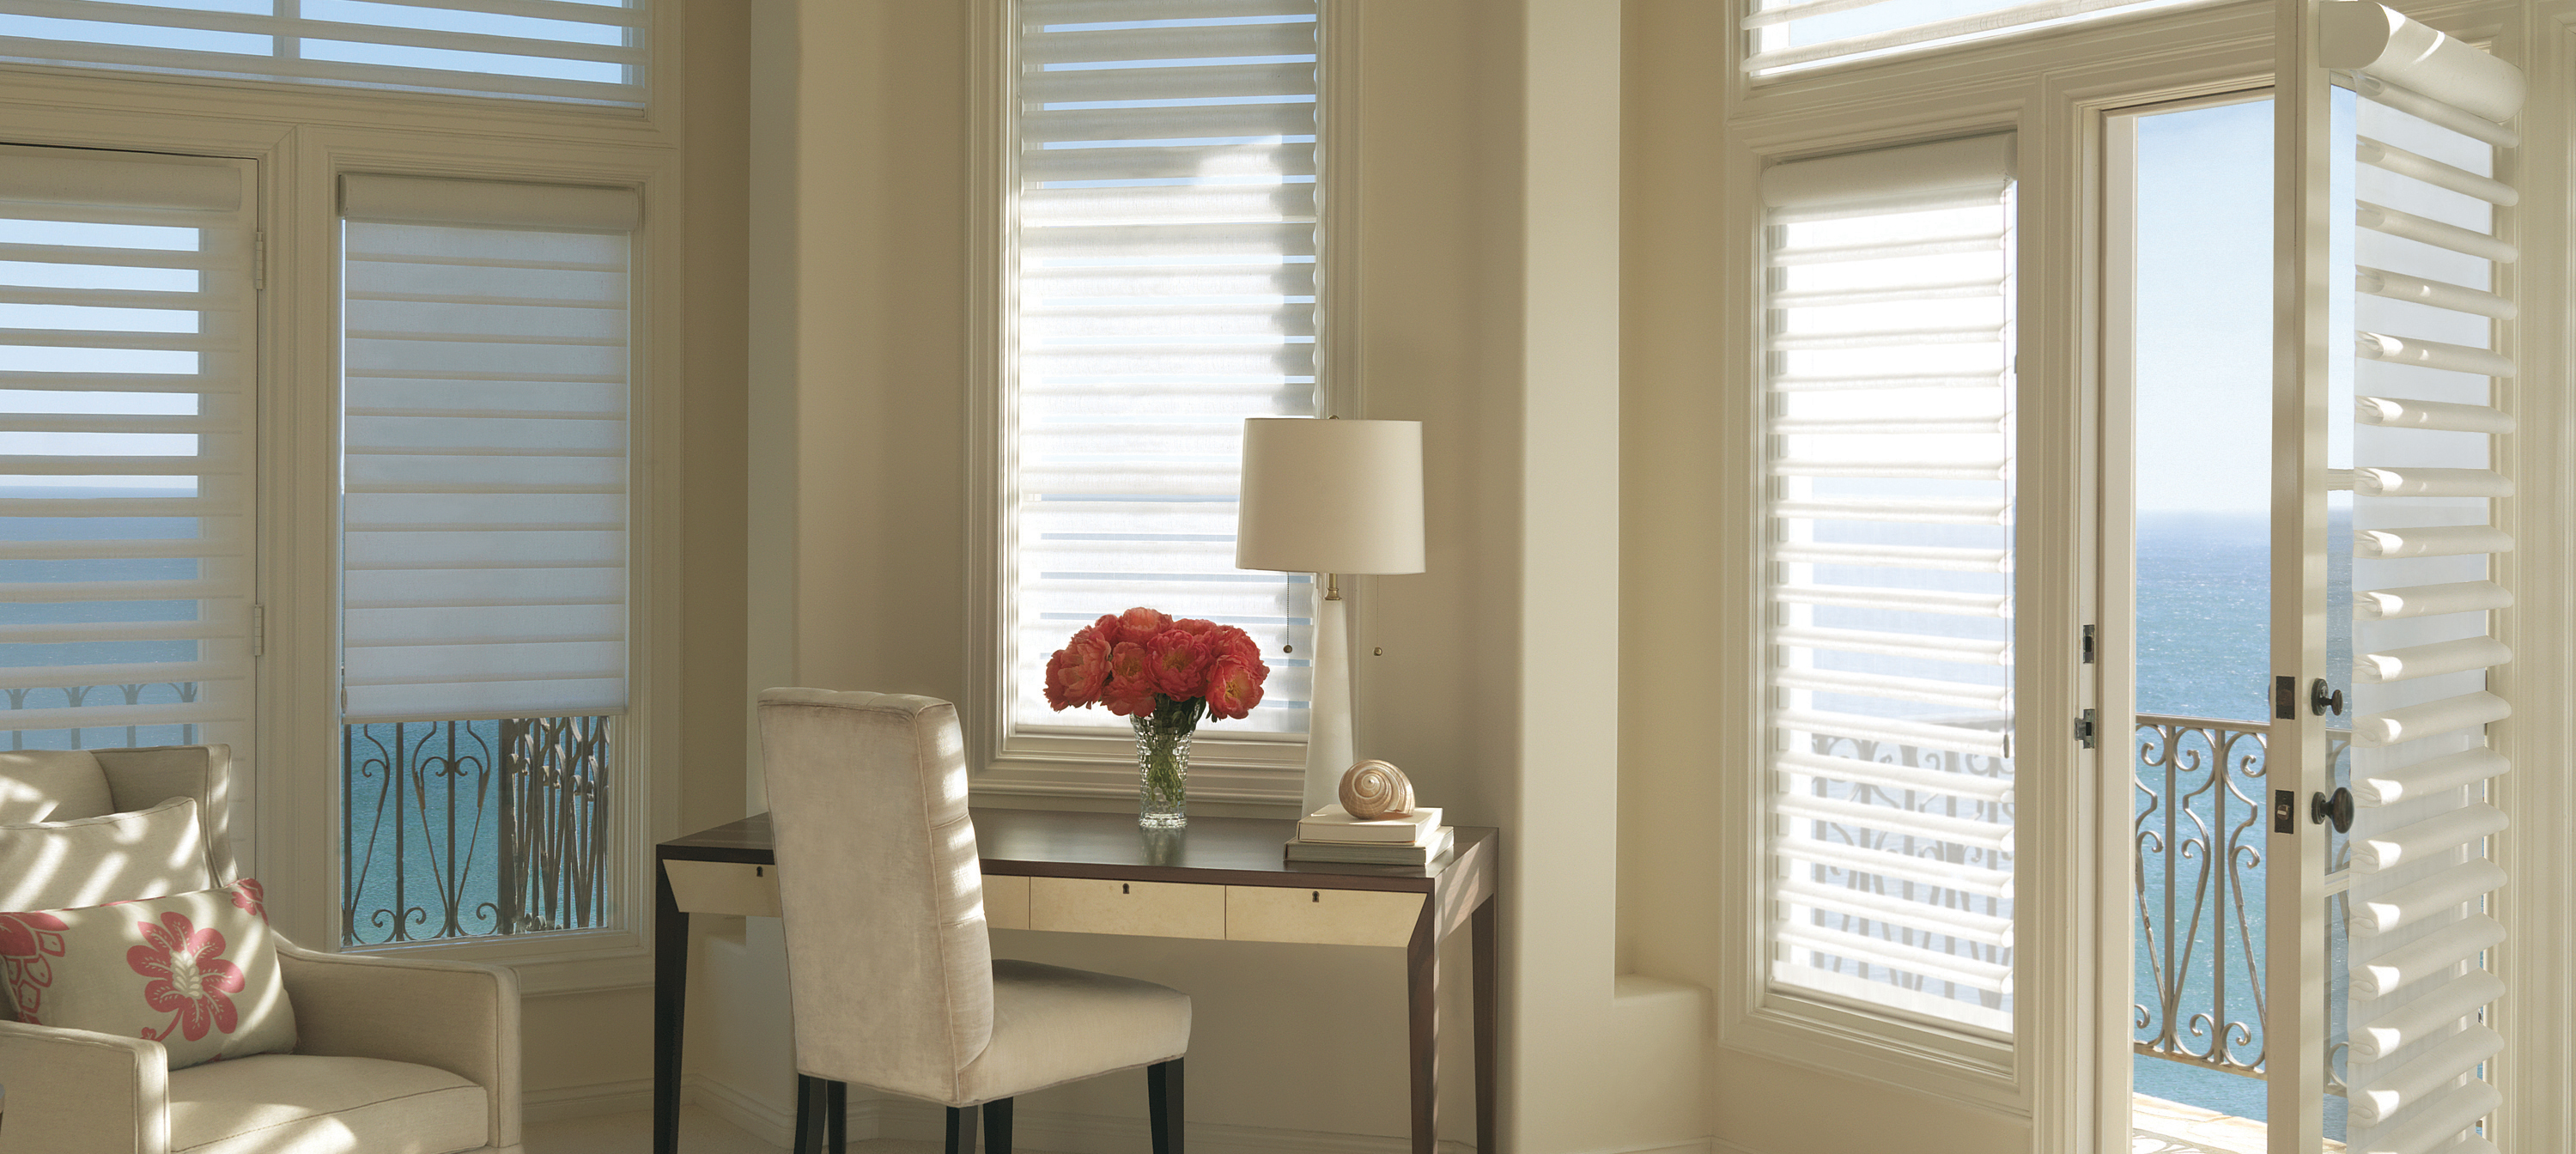 other cordloop panel pirouette coverings track and blinds designerrollerskyline window